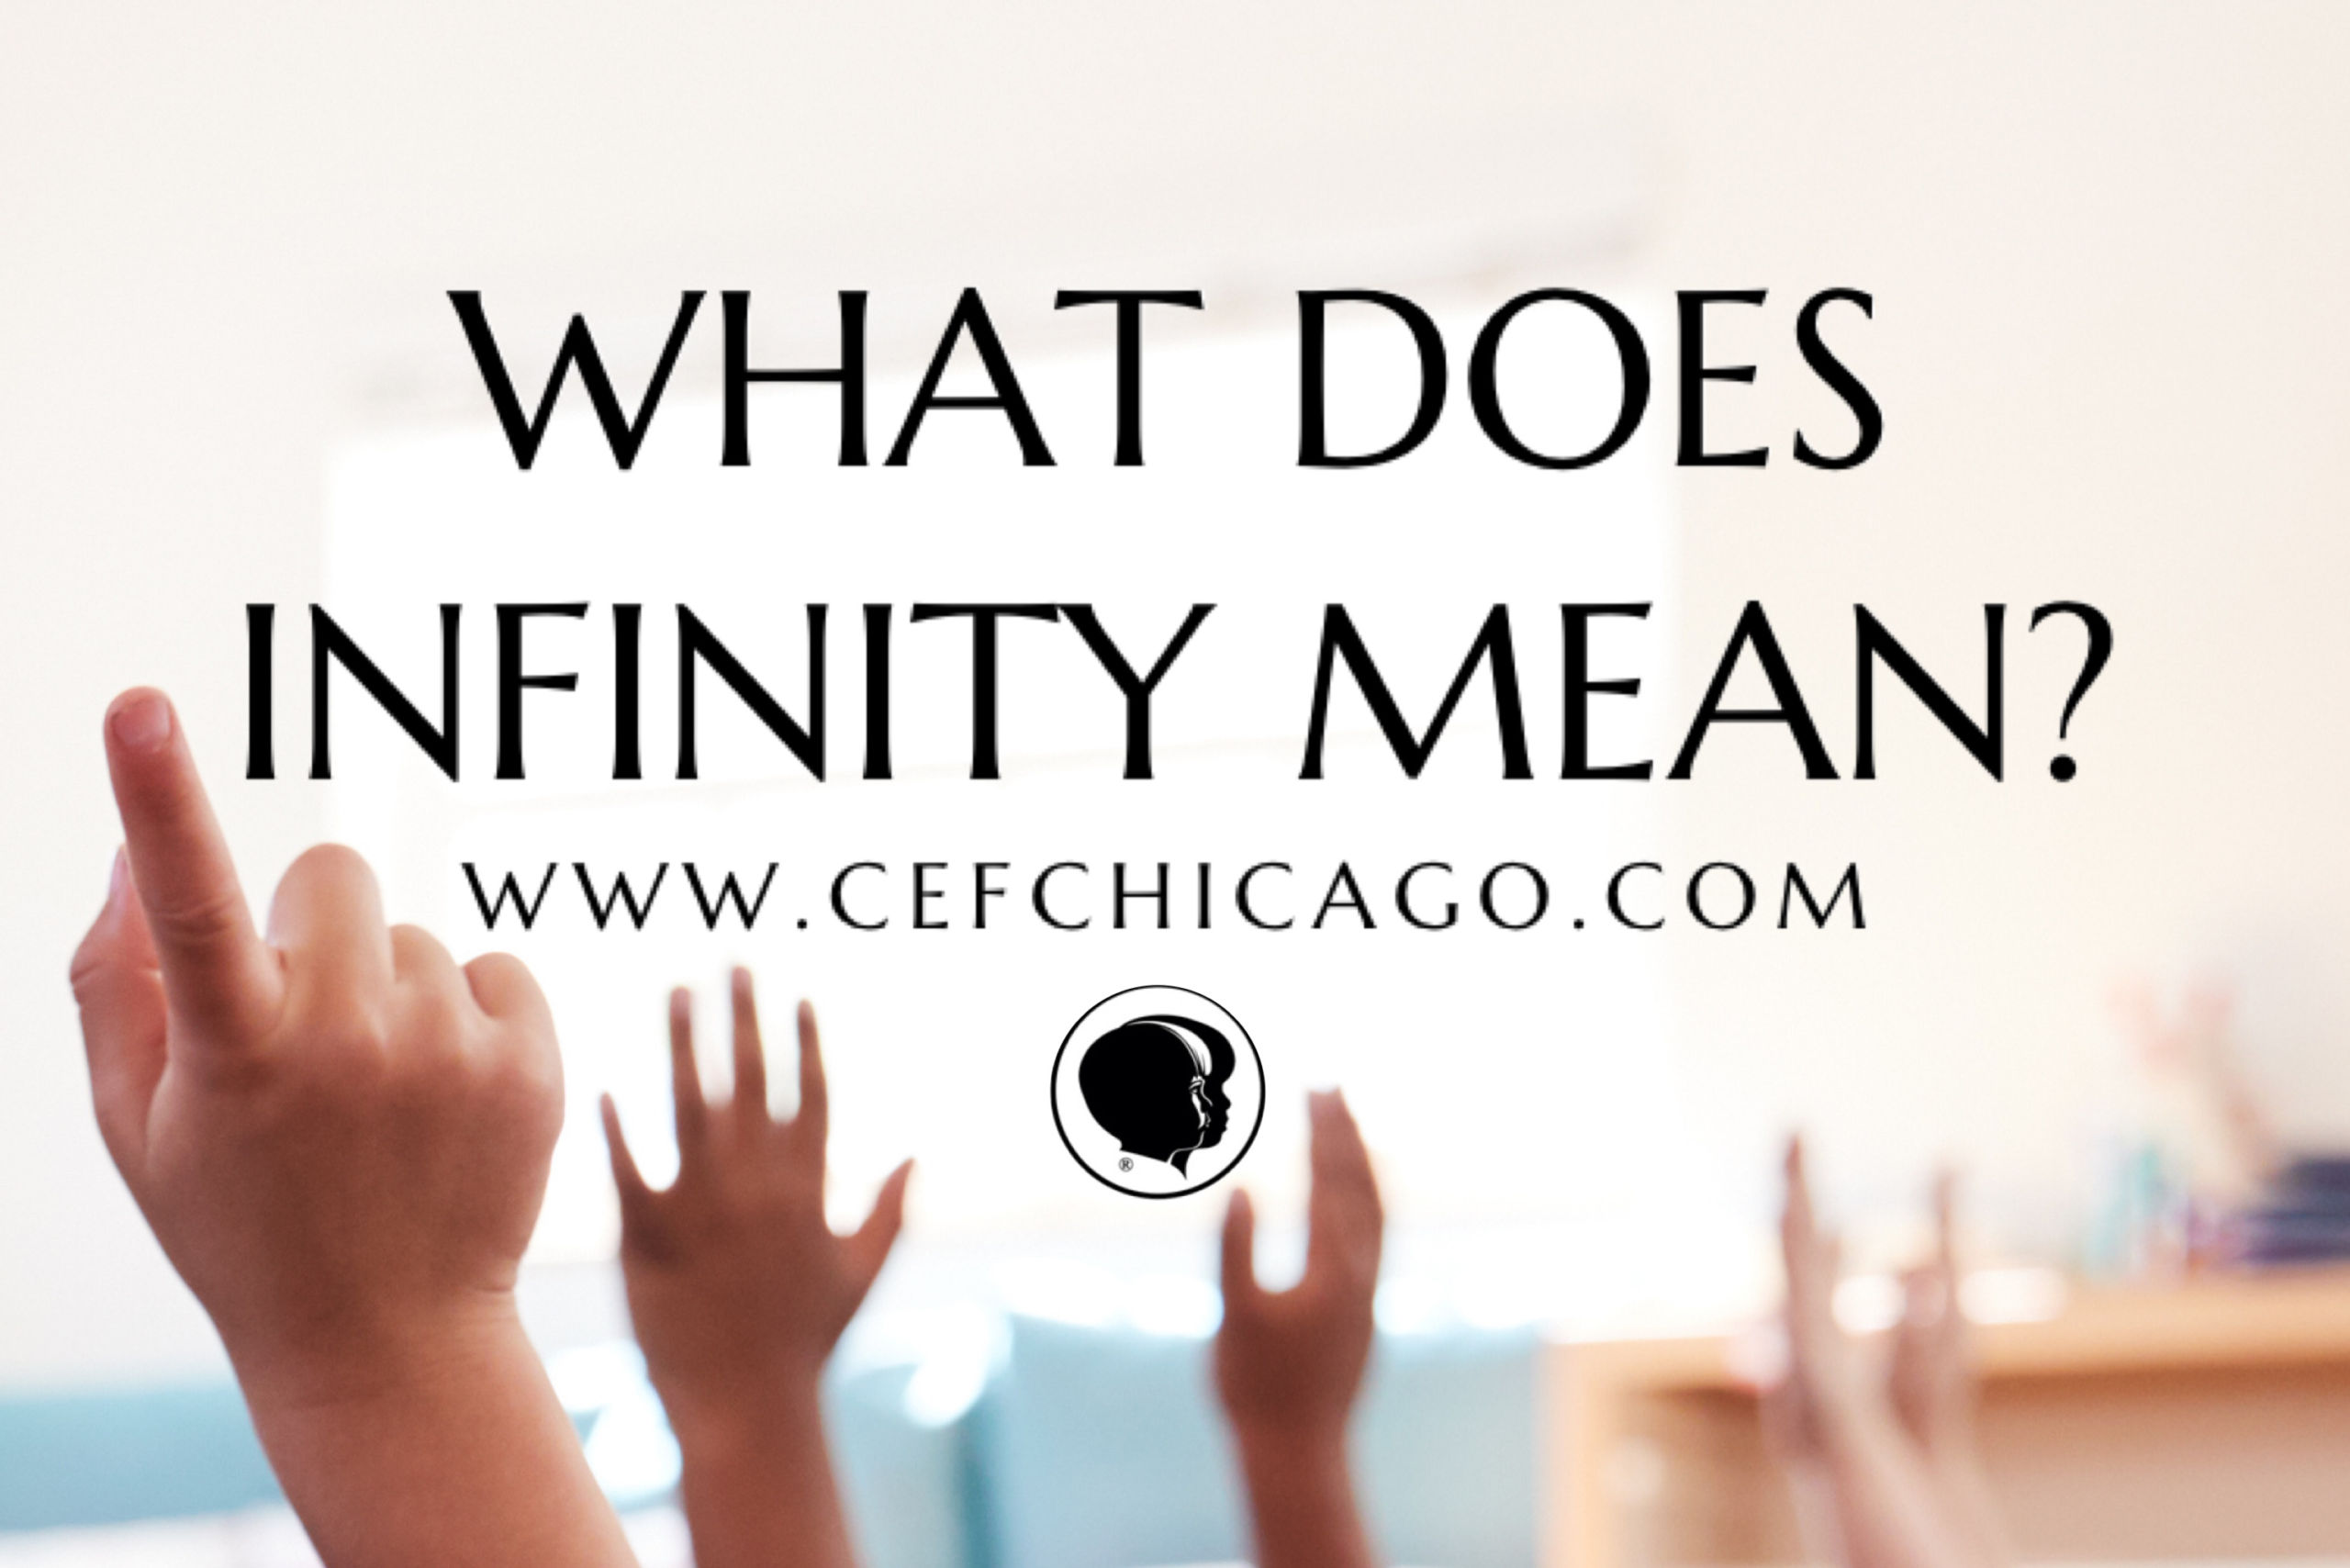 What Does Infinity Mean?